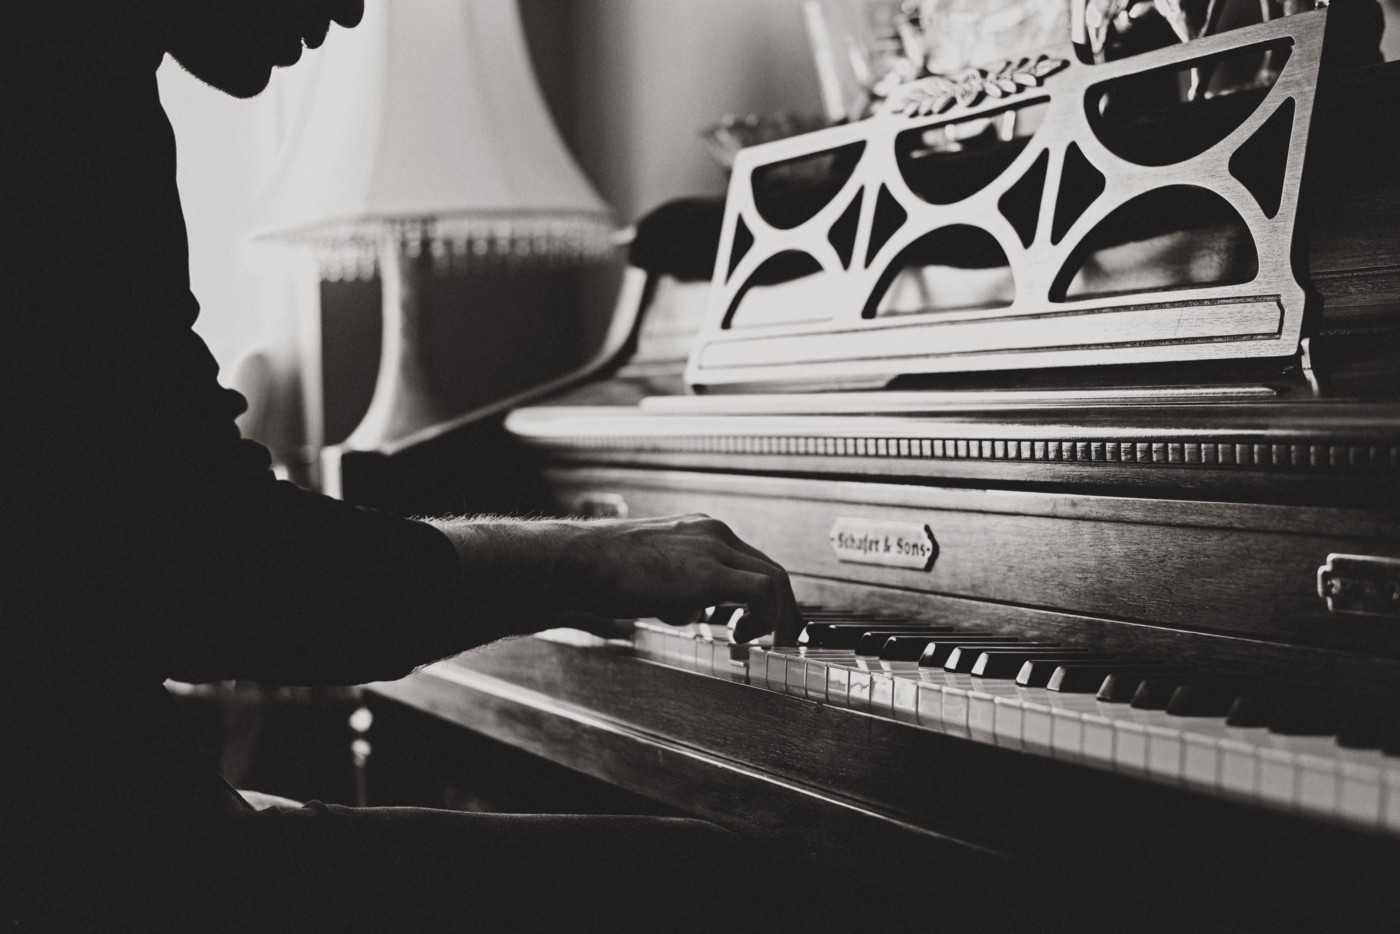 Musician playing piano. Photo by Darius Soodmand on Unsplash